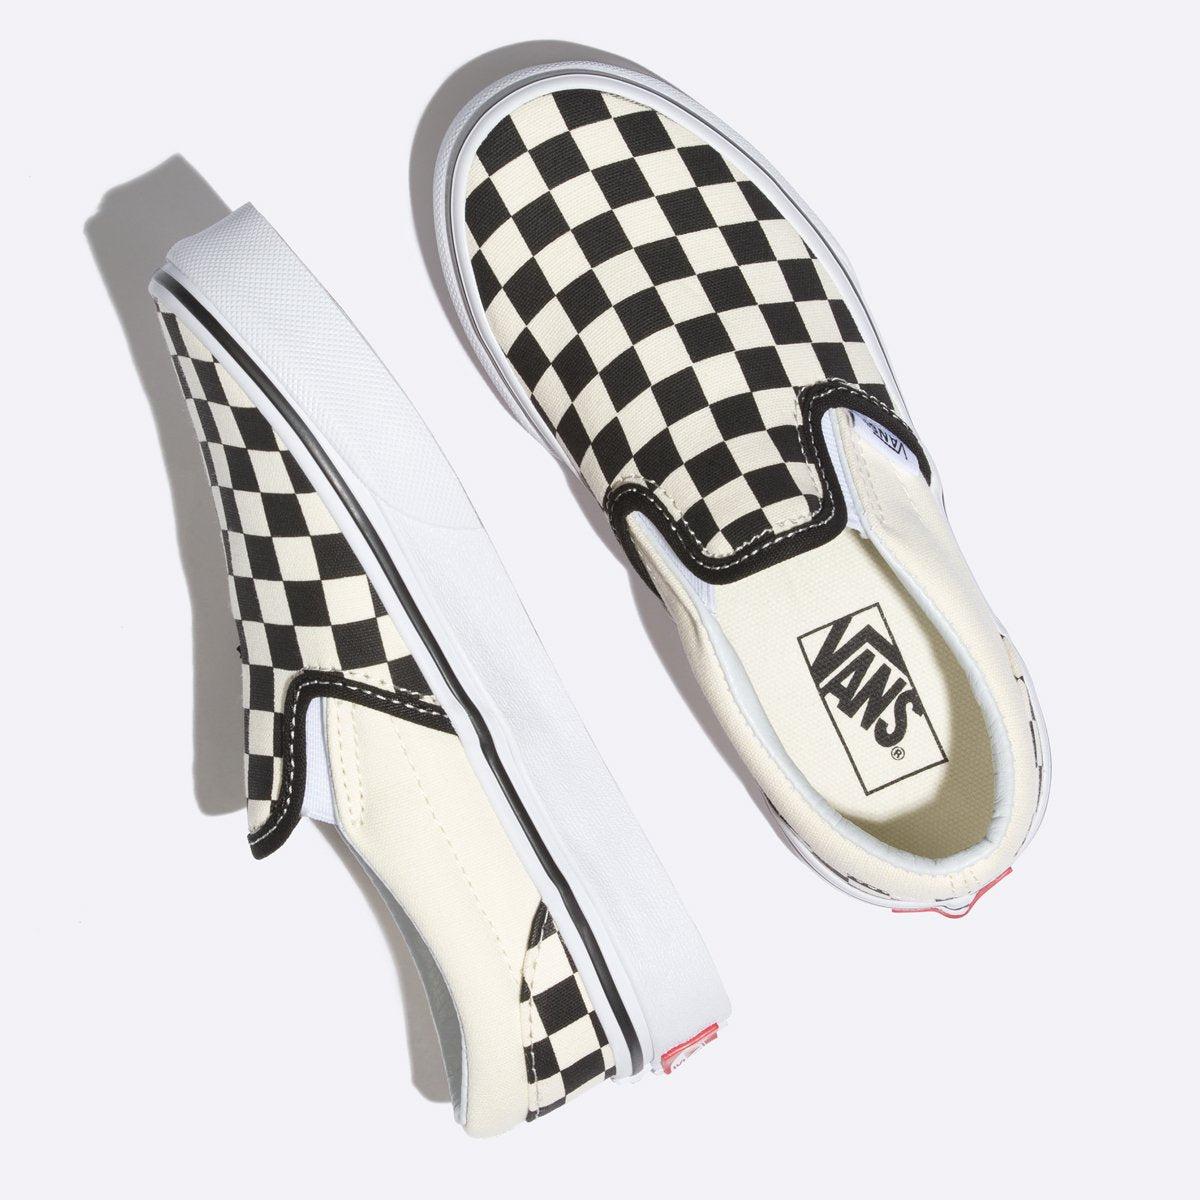 Zapatillas Vans de Niños Classic Slip-On - Black/White - Vans